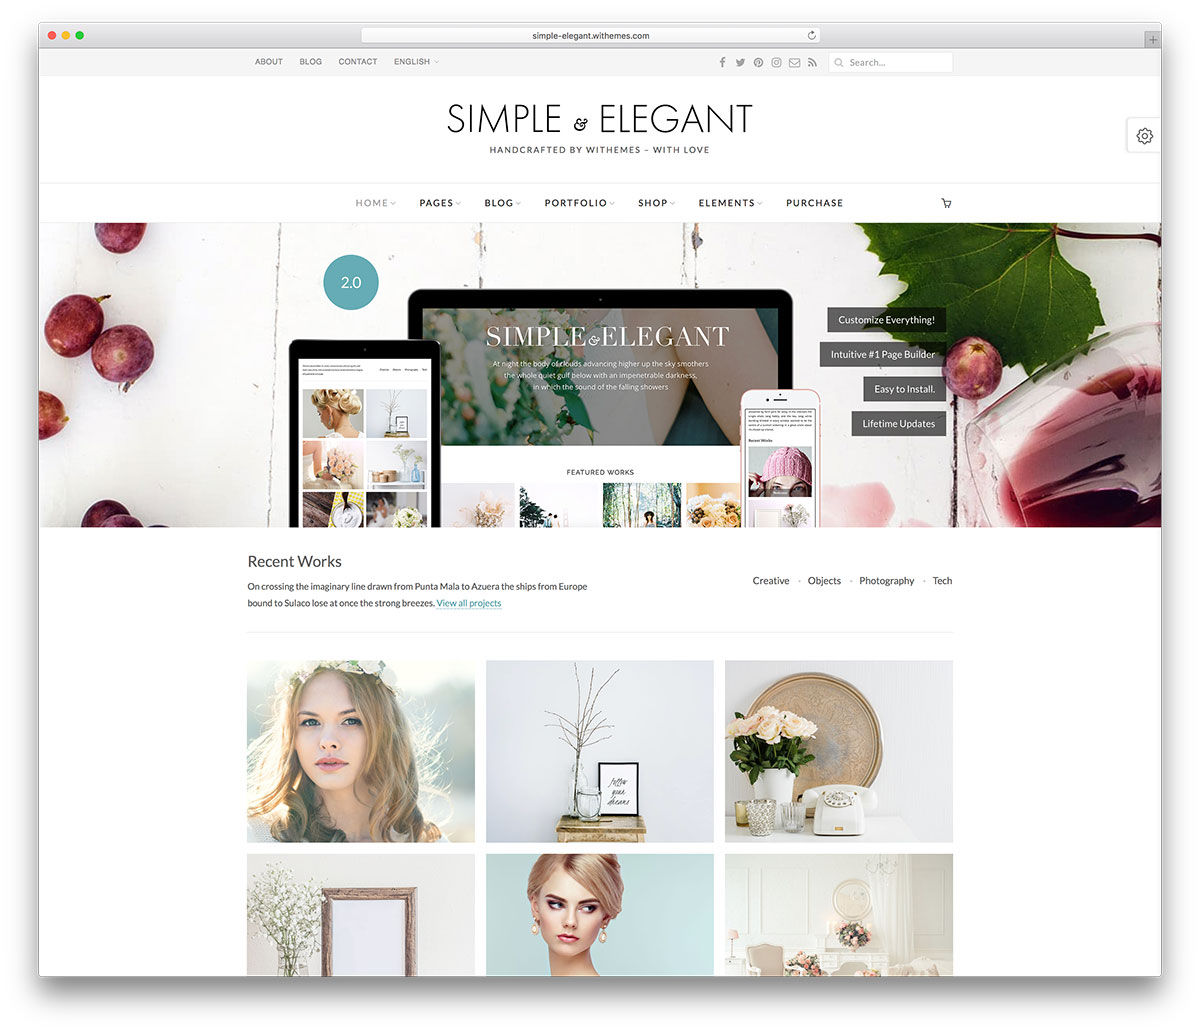 "wordpress-landing-page-simple-élégante-féminine ""width ="" 1200 ""height ="" 1032 ""data-lazy-srcset ="" https://cdn.colorlib.com/wp/wp-content/uploads/sites/2 /simple-elegant-feminine-wordpress-landing-page.jpg 1200w, https://cdn.colorlib.com/wp/wp-content/uploads/sites/2/simple-elegant-feminine-wordpress-landing-landing-page- 300x258.jpg 300w, https://cdn.colorlib.com/wp/wp-content/uploads/sites/2/simple-elegant-feminine-wordpress-landing-page-768x660.jpg 768w, https: // cdn. colorlib.com/wp/wp-content/uploads/sites/2/simple-elegant-feminine-wordpress-landing-page-1024x881.jpg 1024w ""data-lazy-tailles ="" (largeur maximale: 1200px) 100vw, 1200px ""data-lazy-src ="" https://webypress.fr/wp-content/uploads/2019/01/1546591939_564_49-meilleurs-thèmes-WordPress-minimalistes-pour-les-créations-2019.jpg?is-pending-load= 1 ""srcset ="" données: image / gif; base64, R0lGODlhAQABAIAAAAAAAP /// yH5BAEAAAAALAAAAAABAAAAAAIBRAA7 ""/></p> <p><noscript><img class="